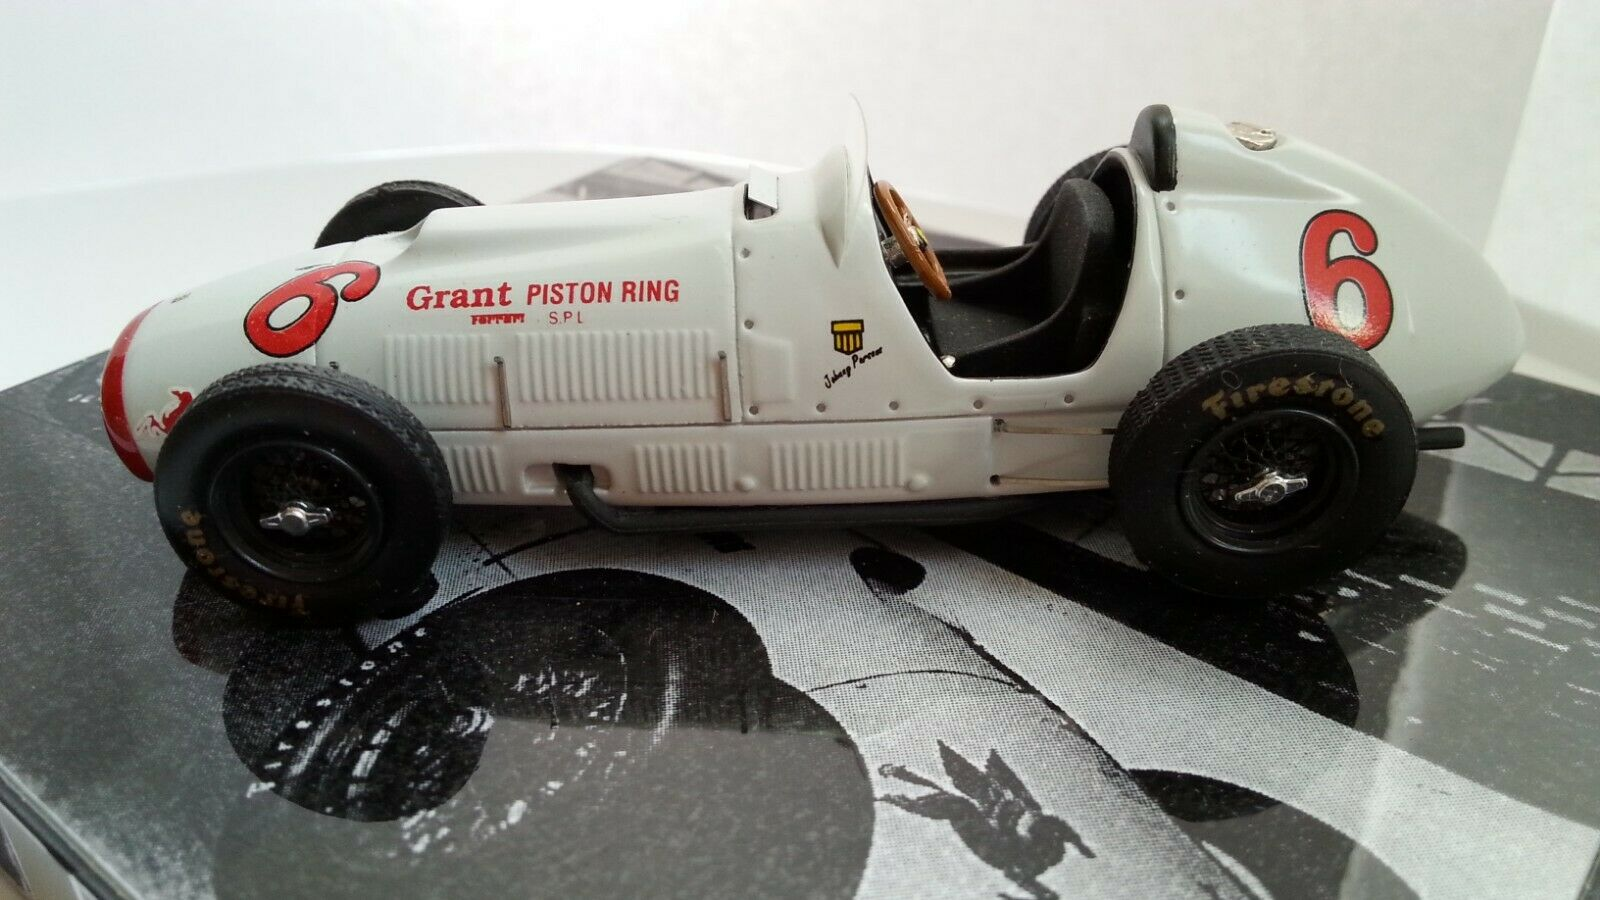 Ferrari Heco 375 Indy 1952 Grant Piston RARE Comme neuf condition factory built Model